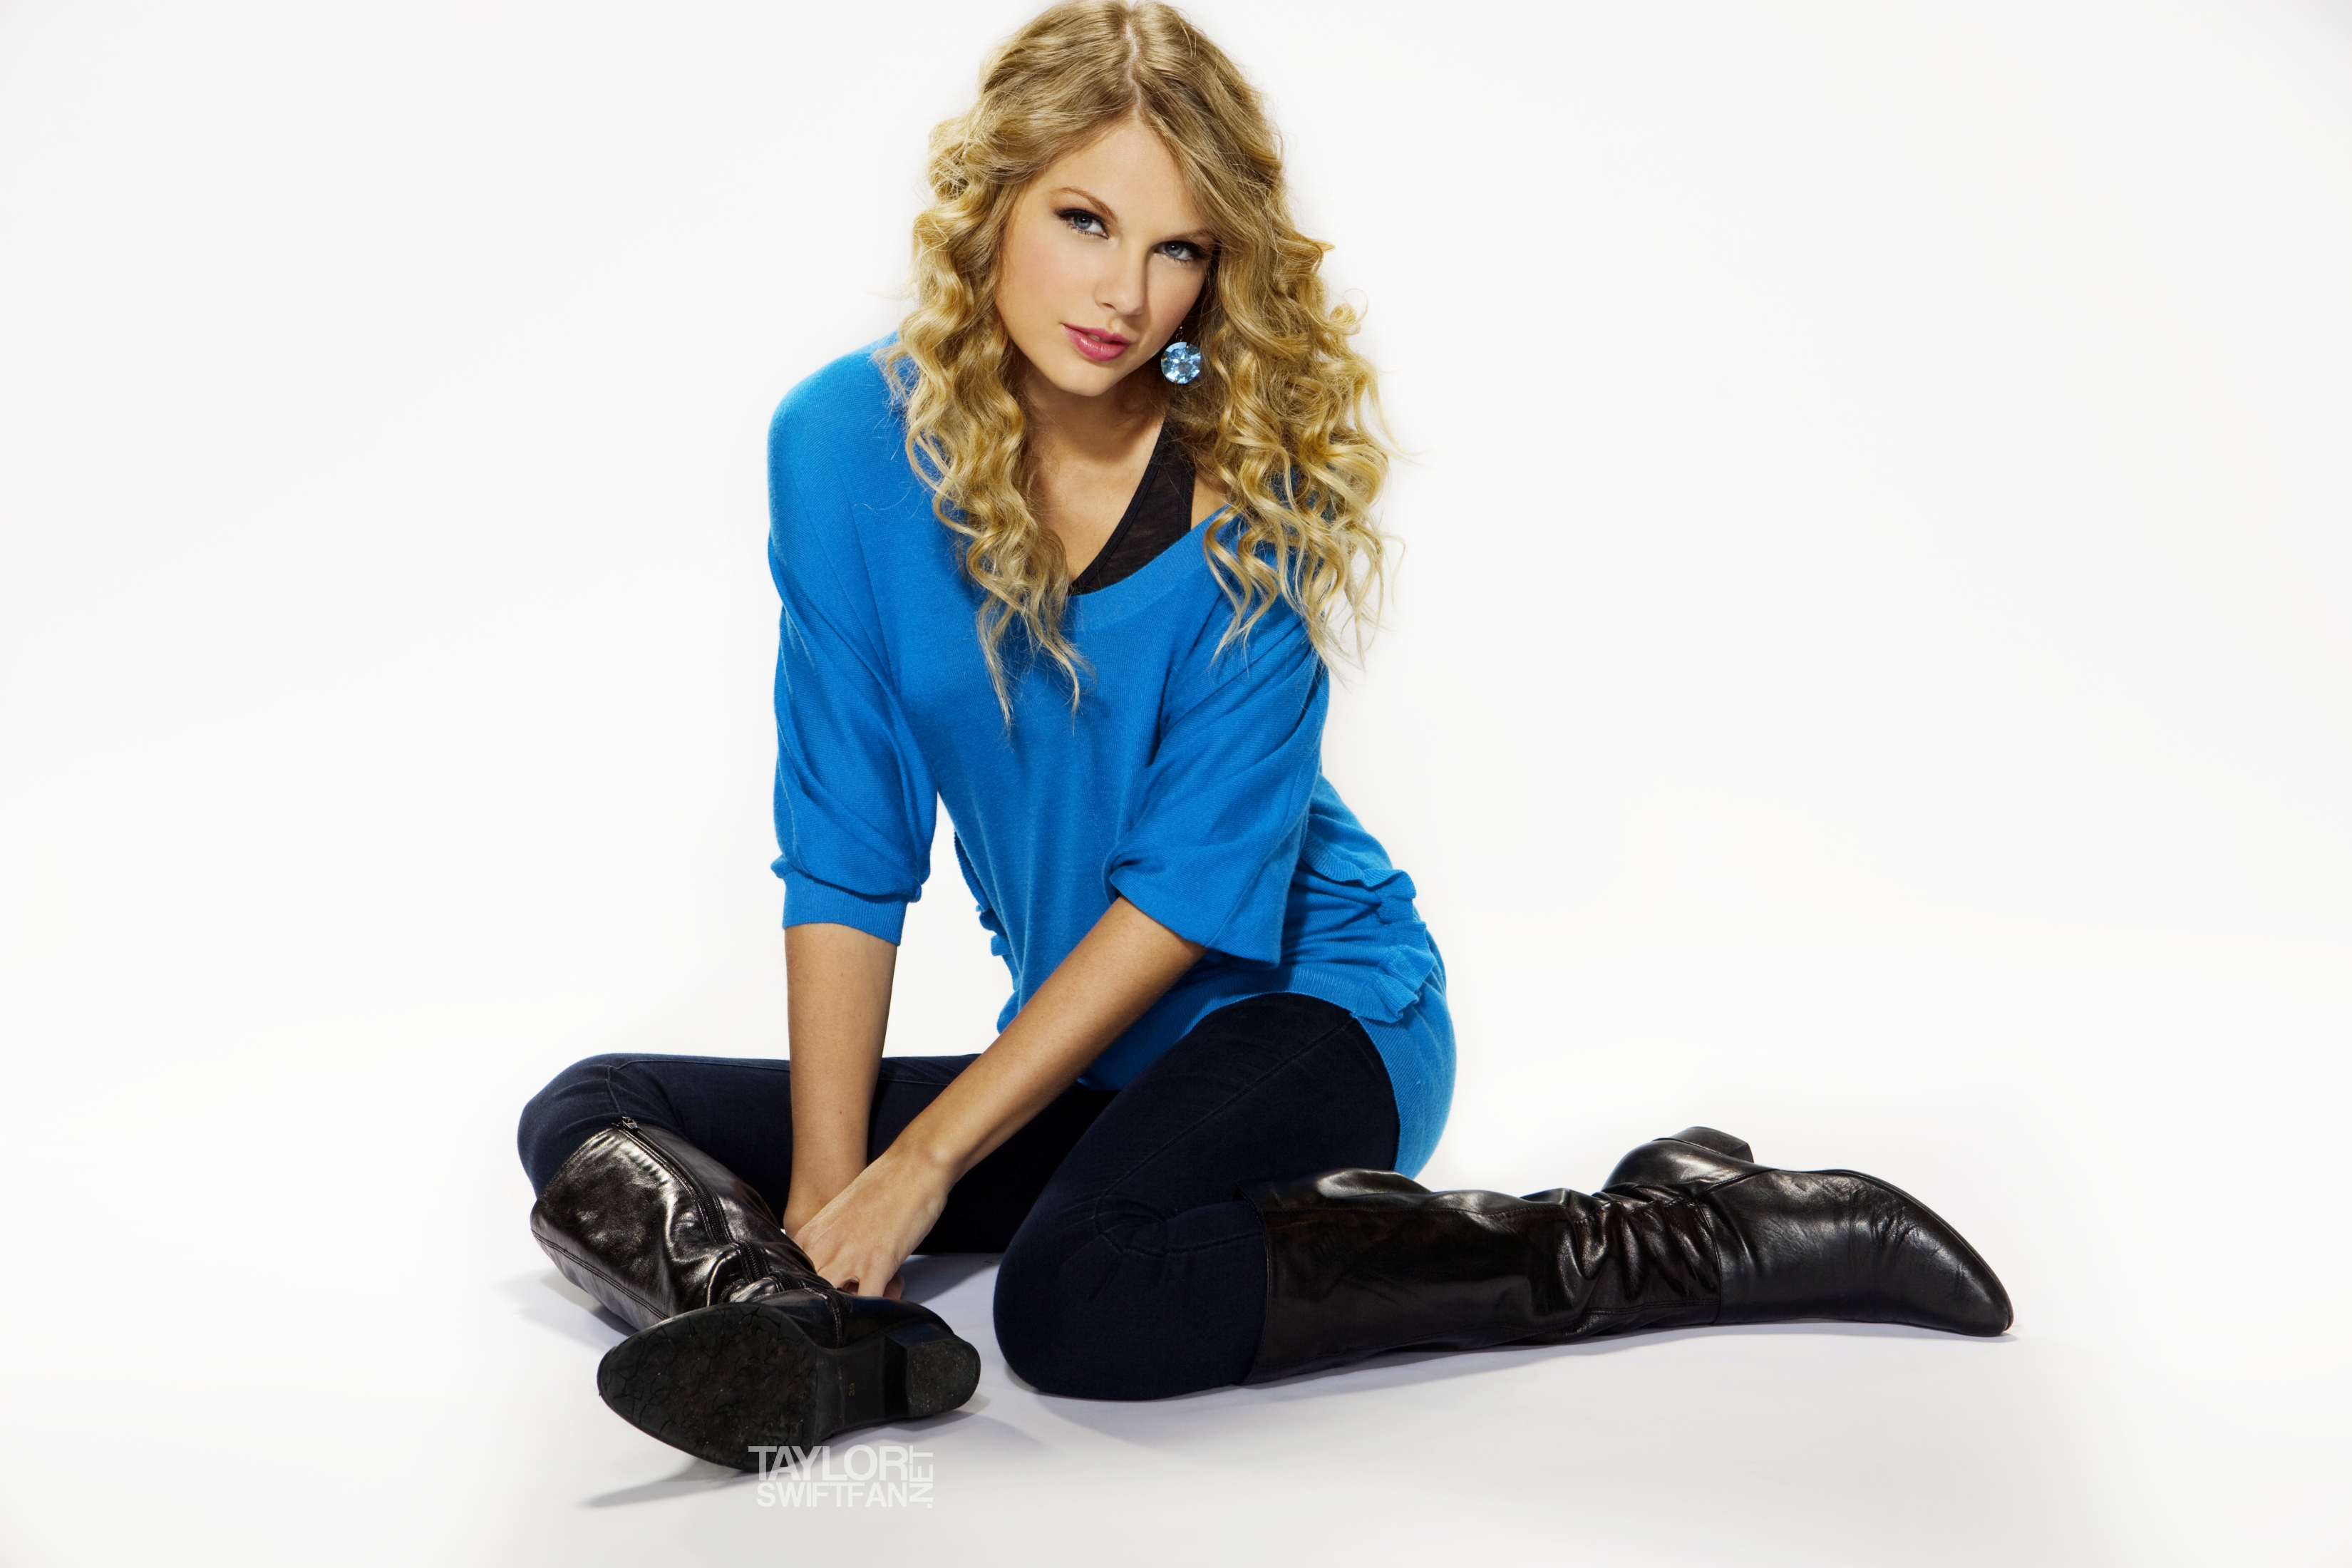 Music - Taylor Swift  - Taylor - Swift Wallpaper